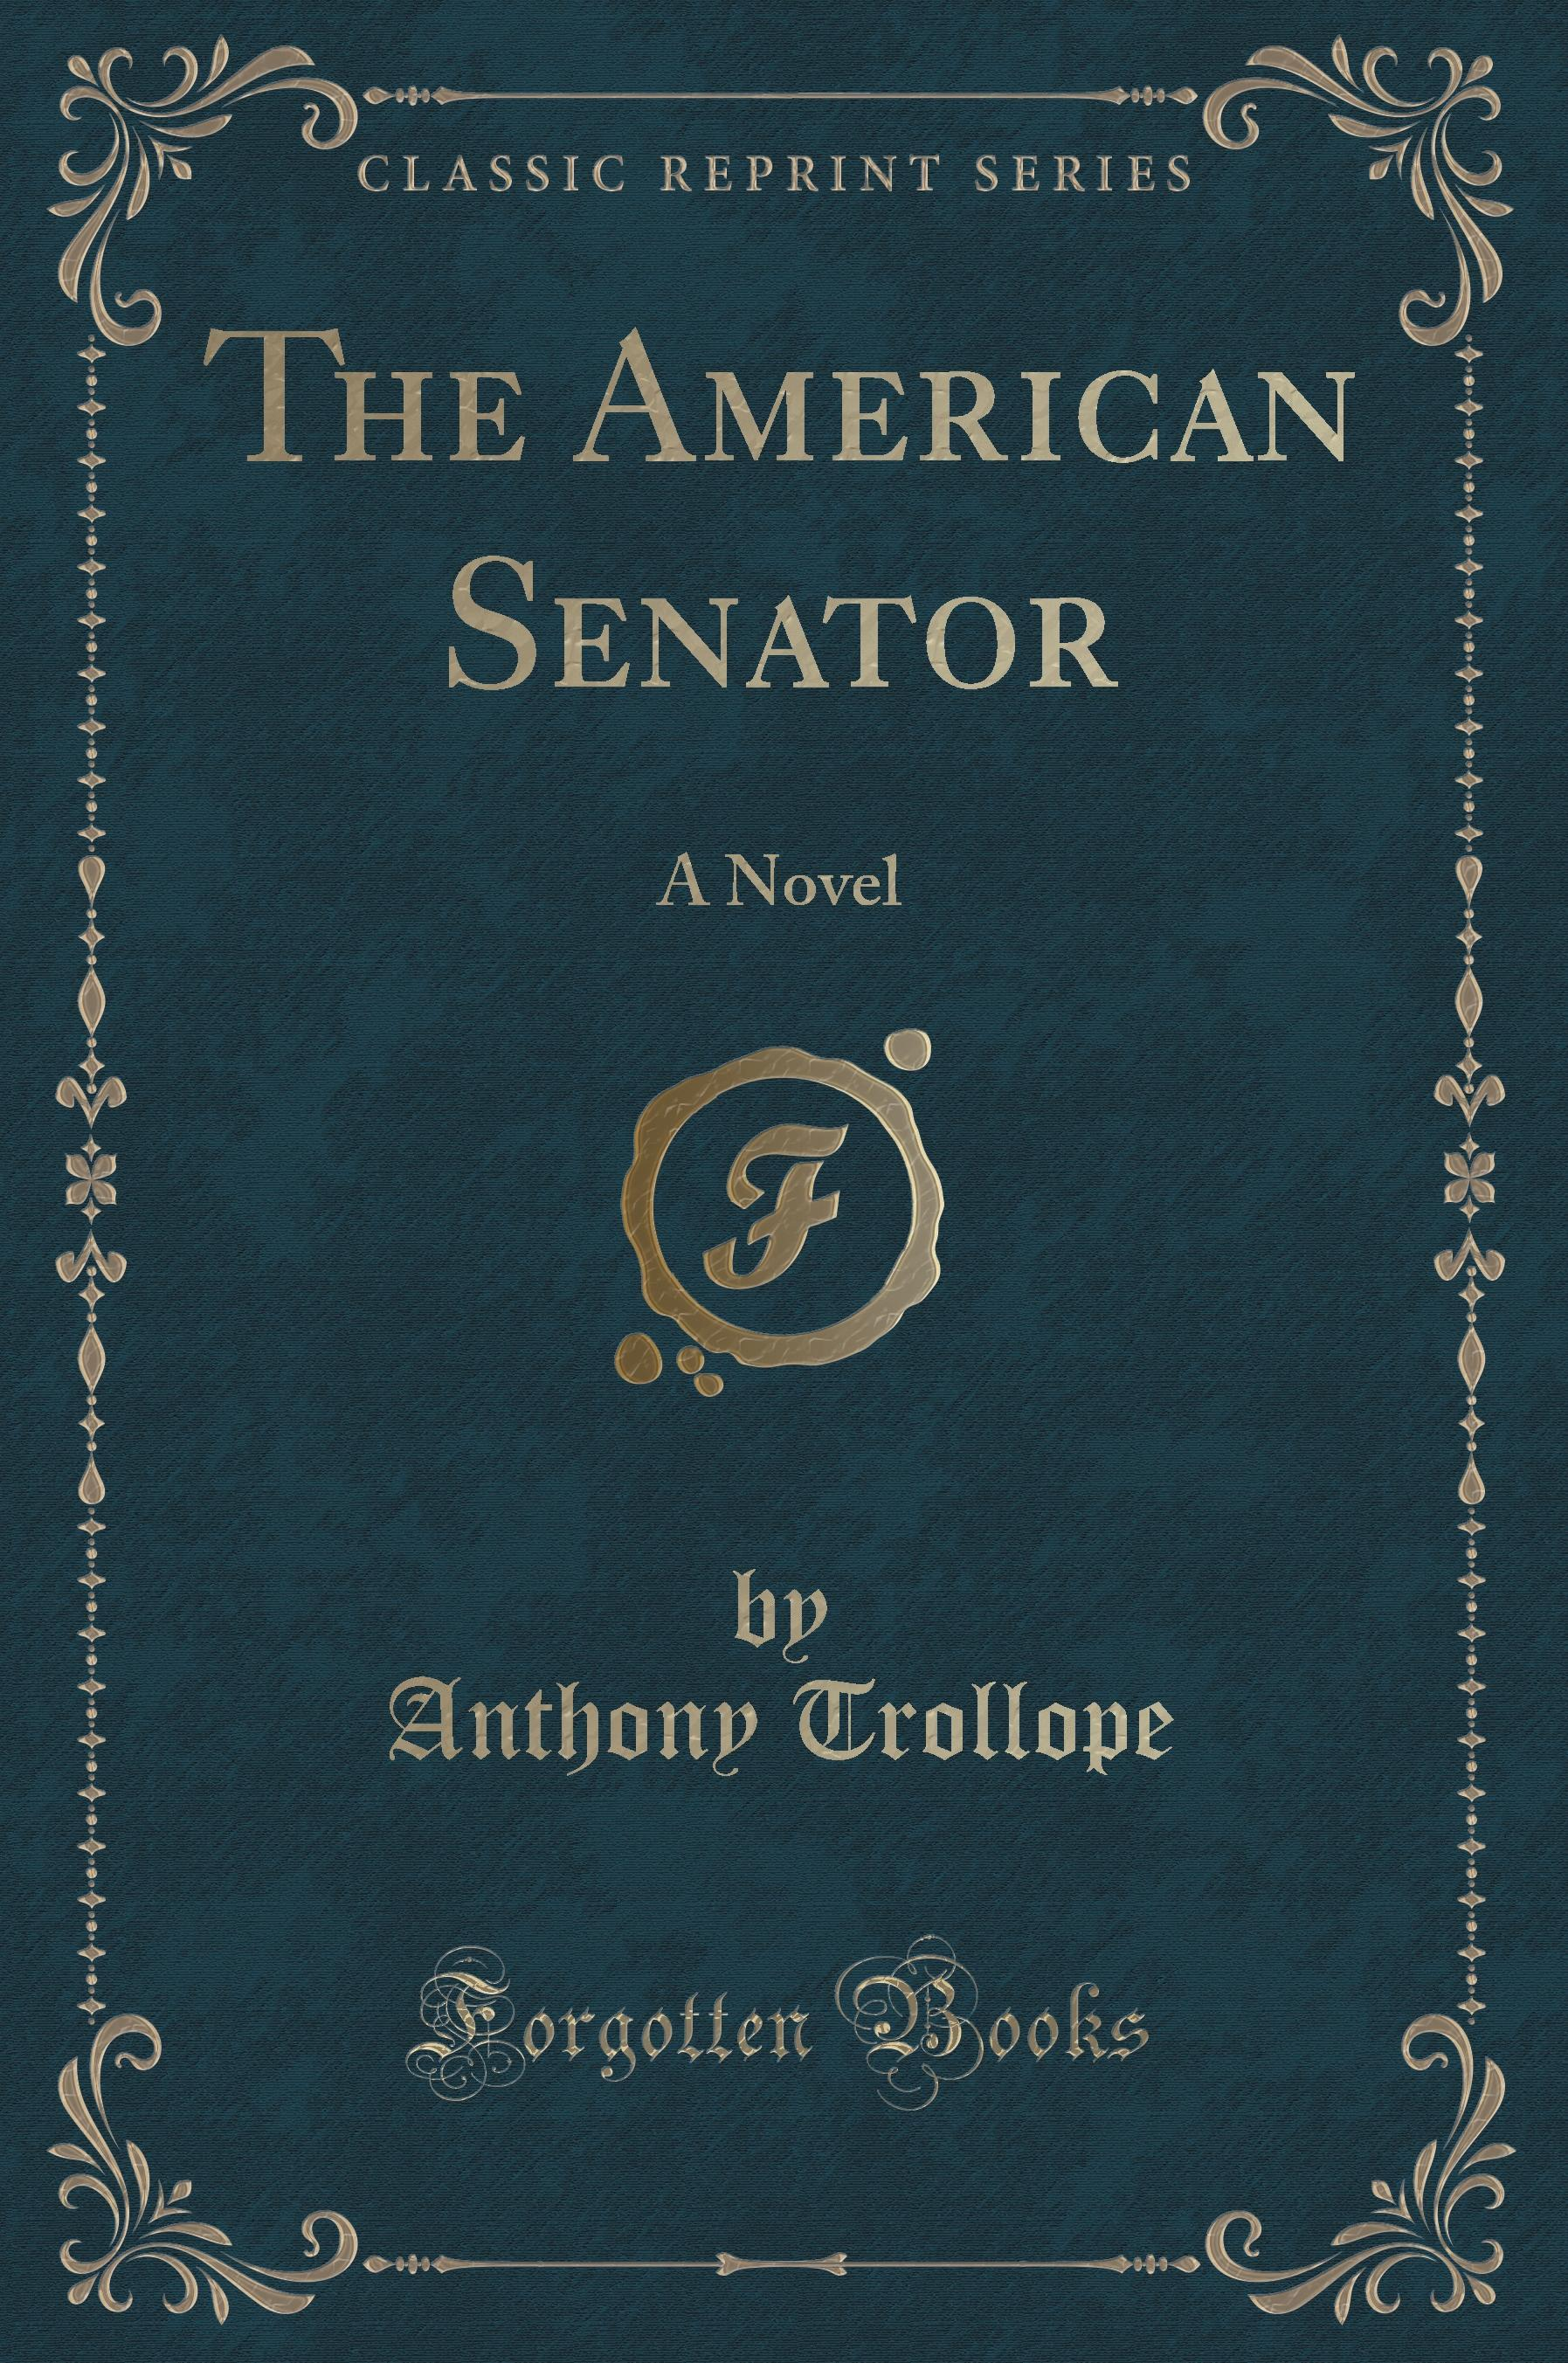 The American Senator, Anthony Trollope